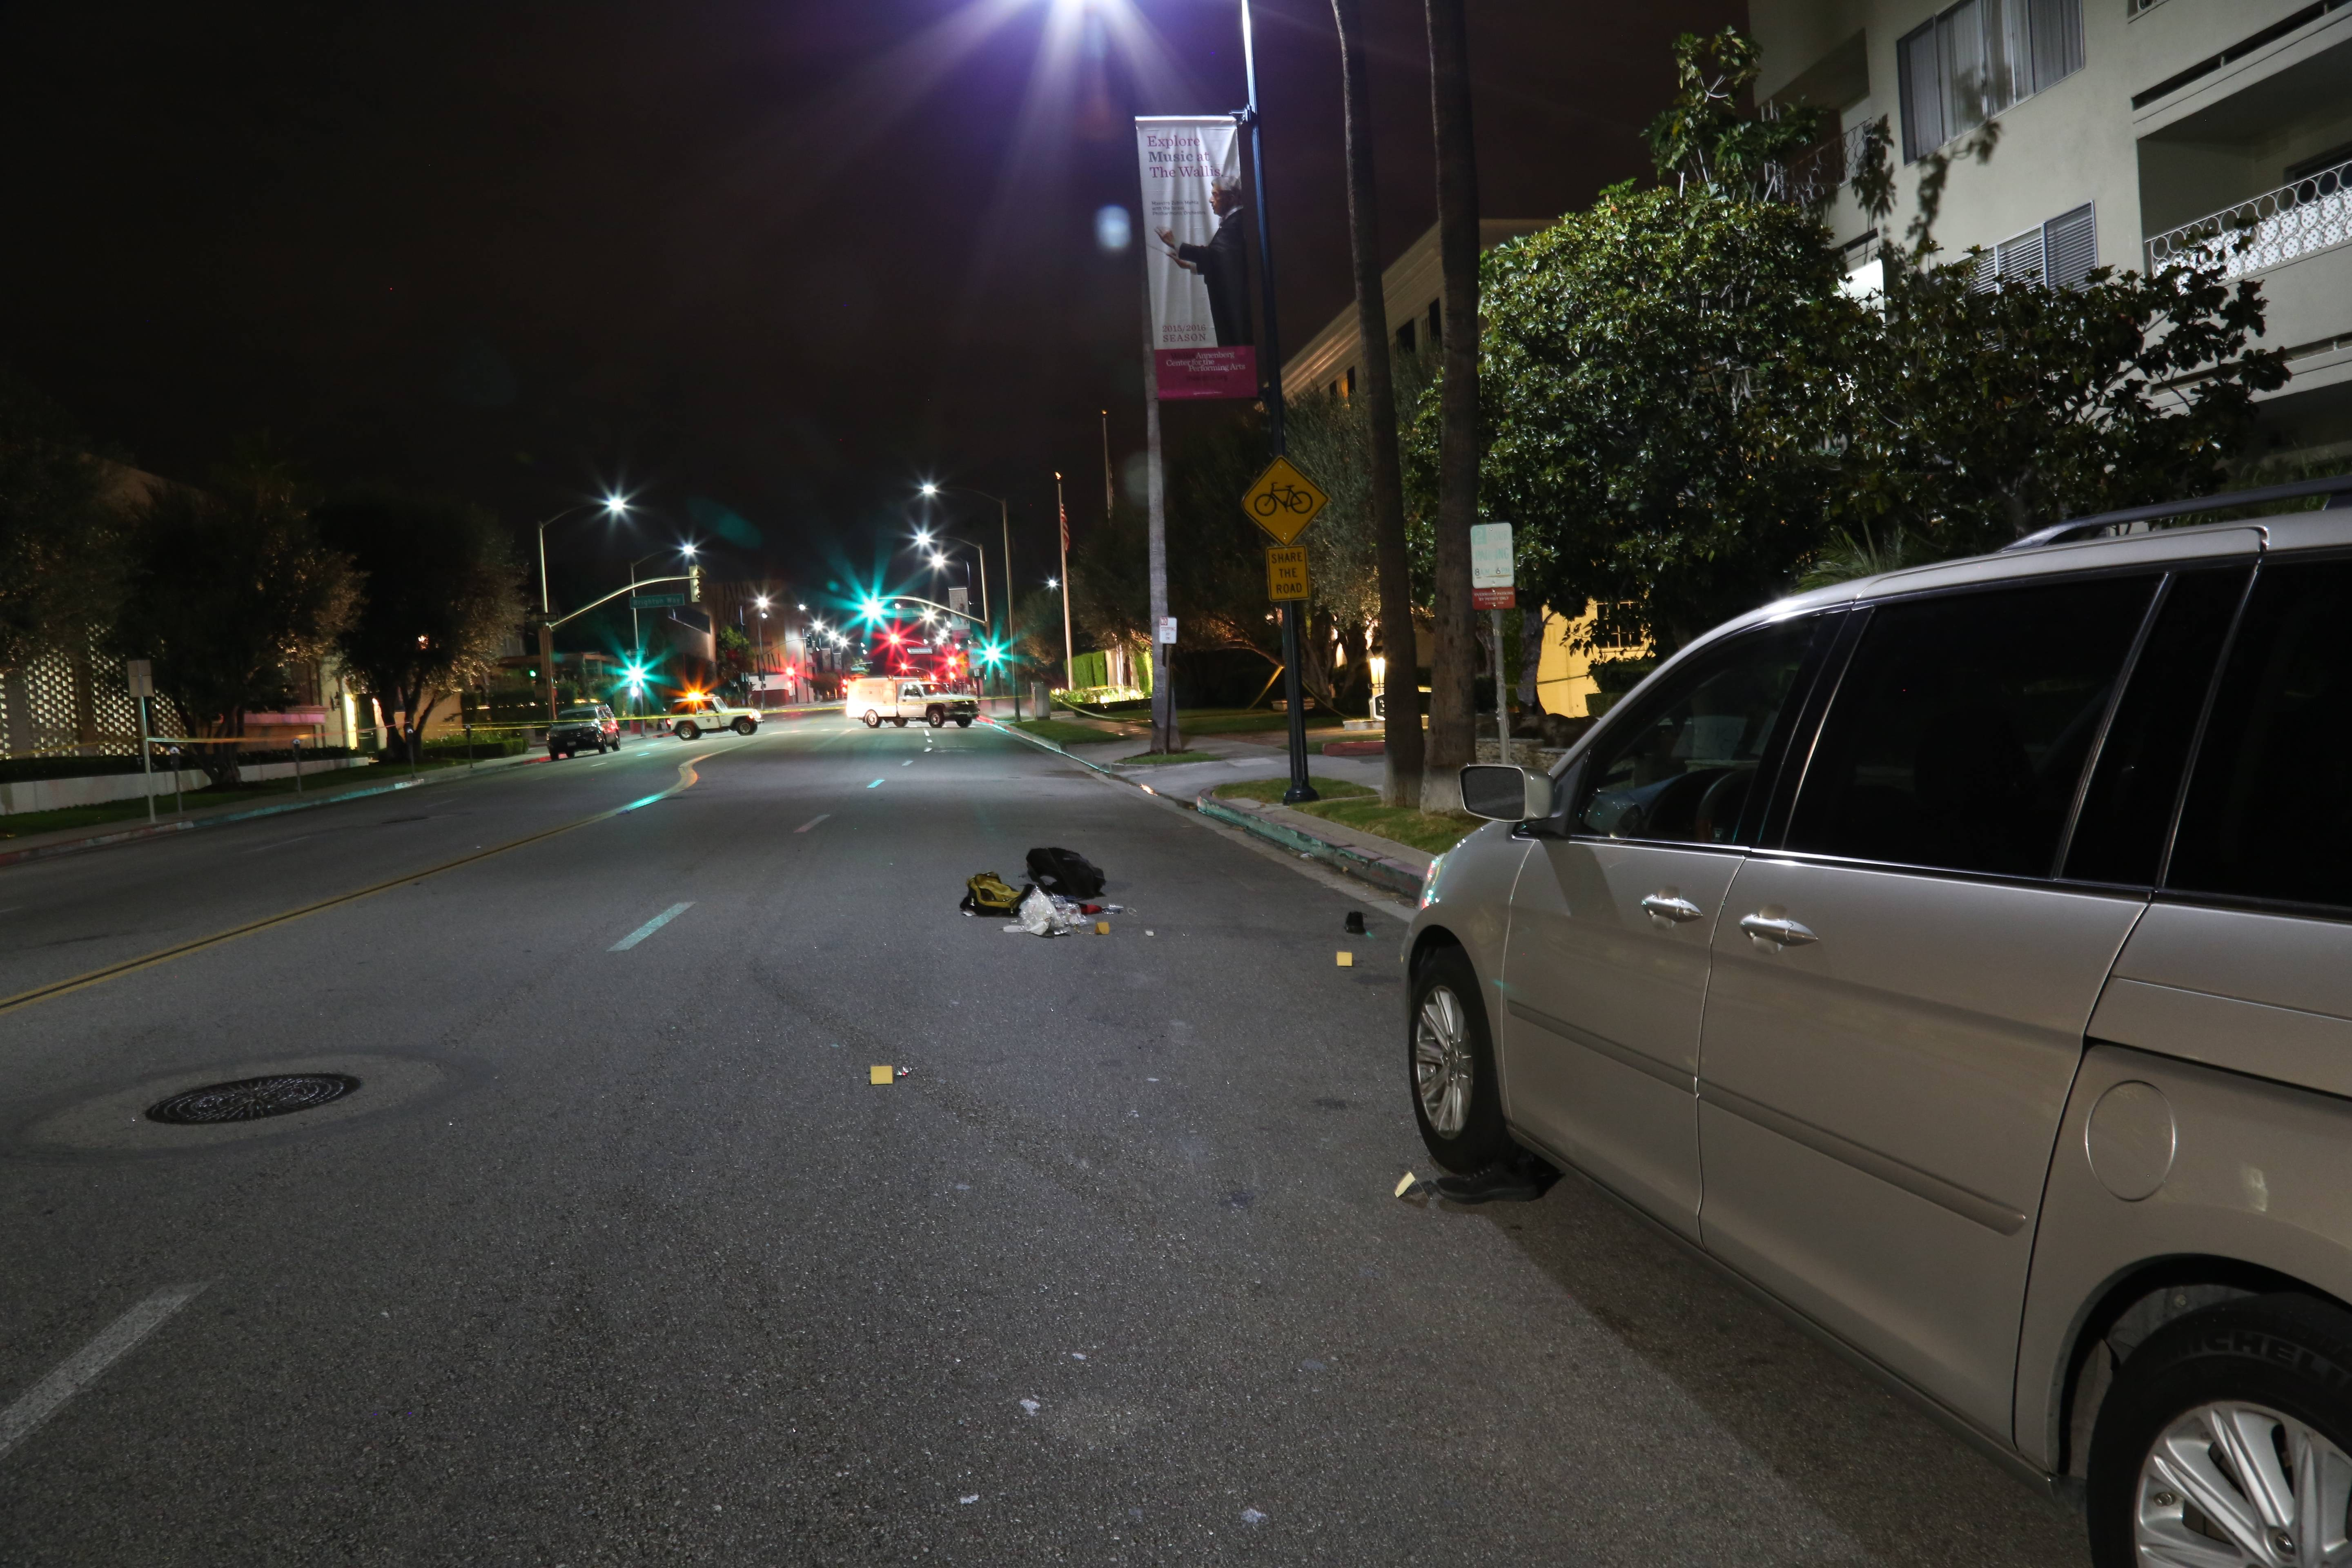 Another angle of the aftermath of a deadly hit-and-run near Crescent Drive.